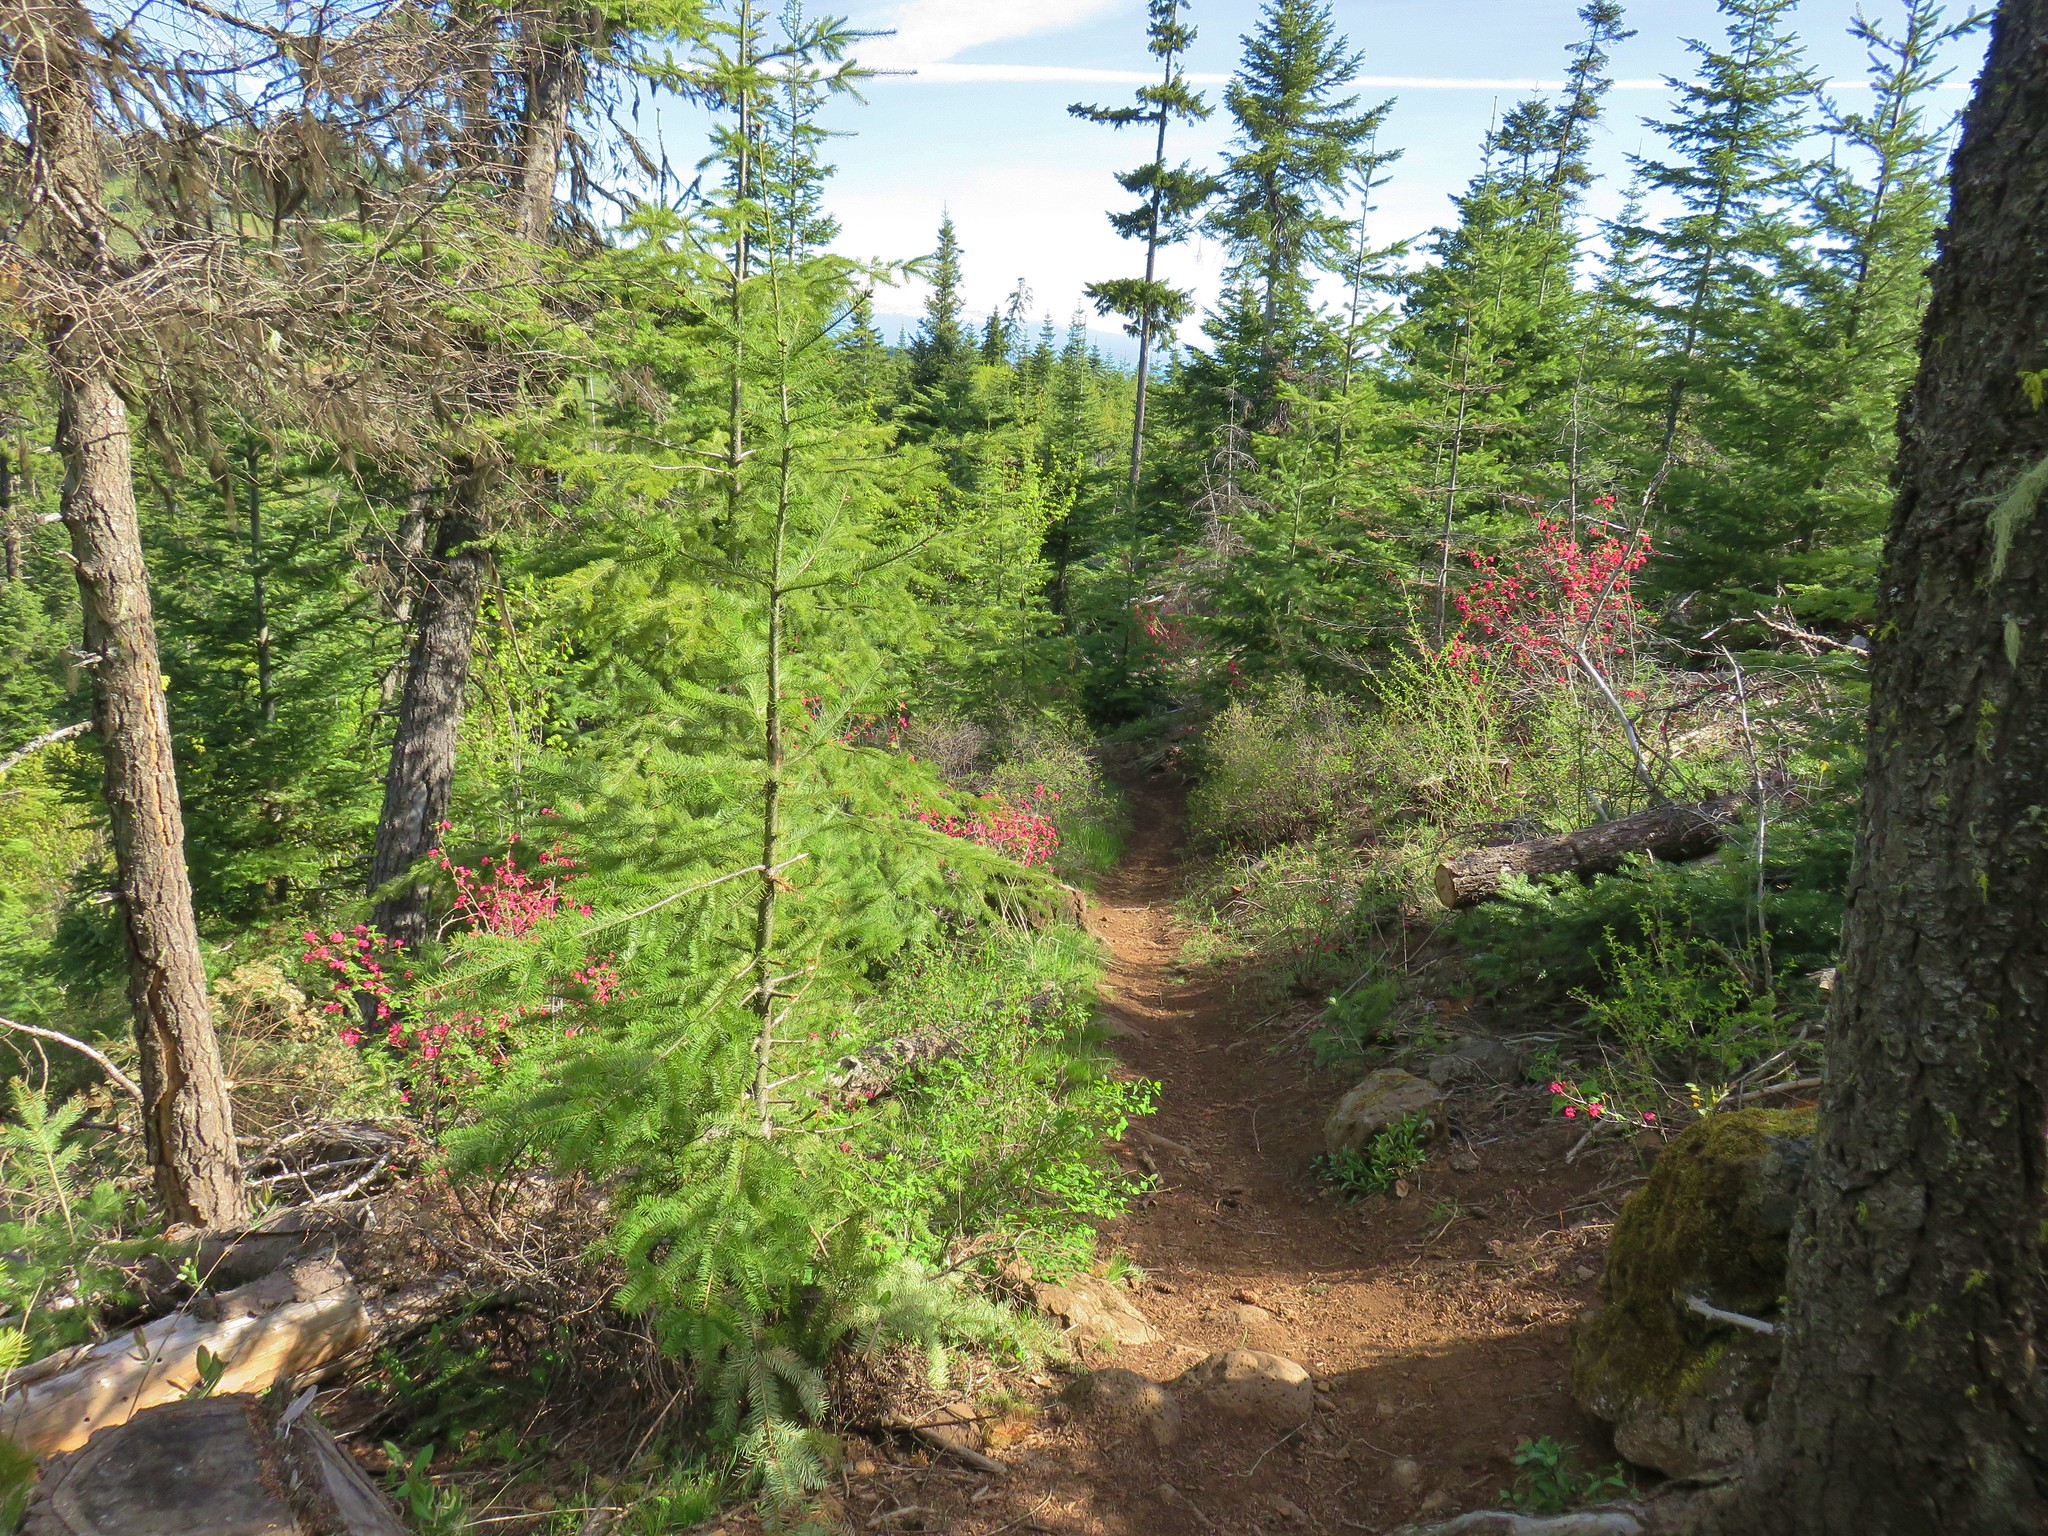 Surveyor's Ridge Trail